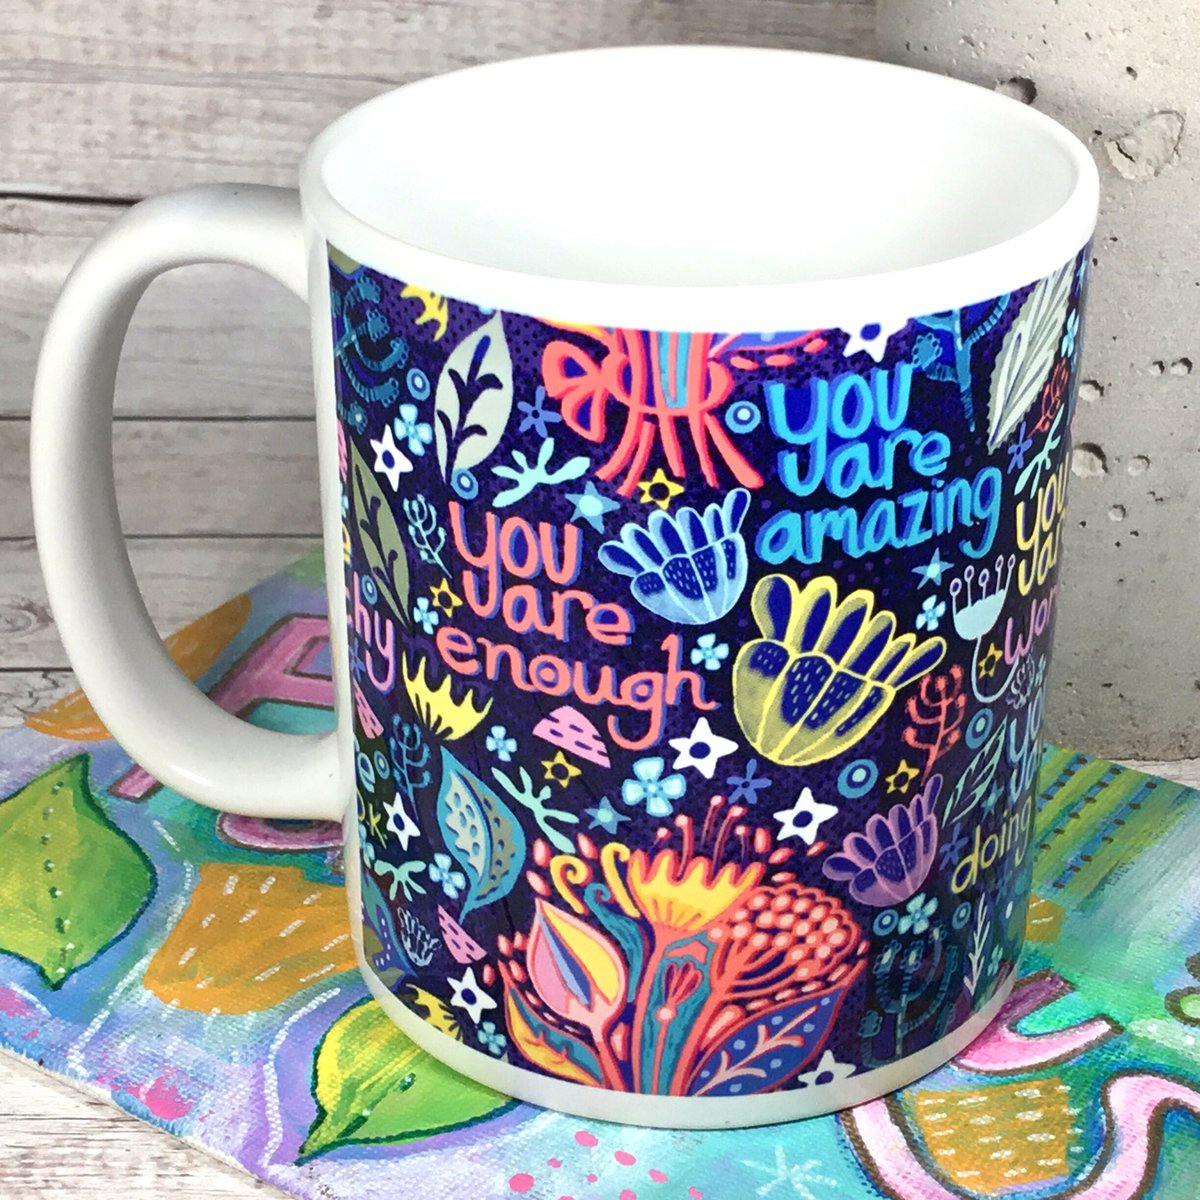 A dose of positivity with your coffee?   https://www. etsy.com/uk/listing/695 427196/motivational-mug-positive-affirmations?ref=shop_home_active_1&frs=1  …  #handmadehour #positivemindset  #selfcare #etsyuk #youareamazing #womaninbizhour<br>http://pic.twitter.com/1A16r0GKfv